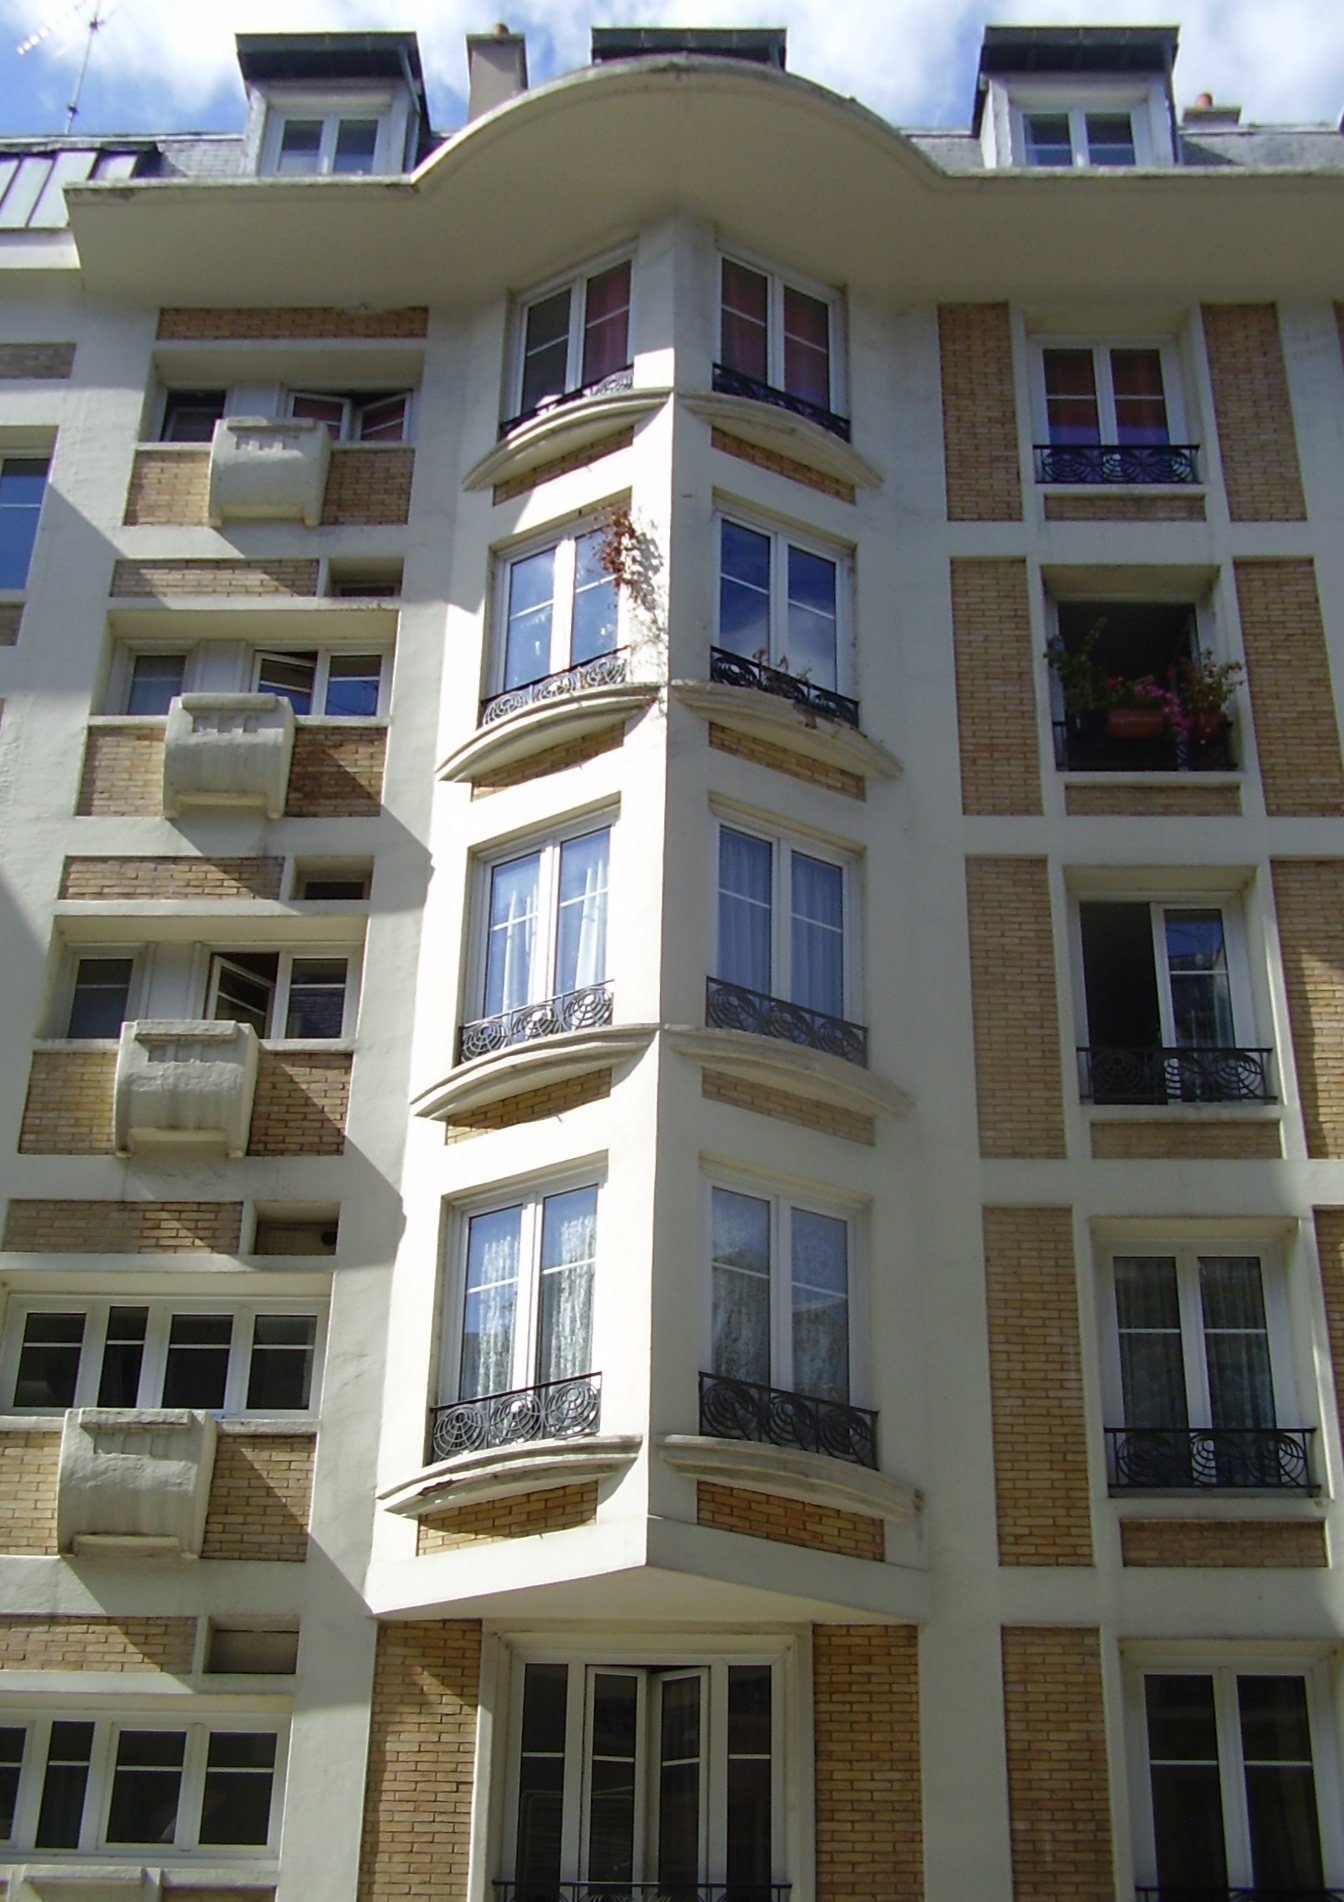 file:building 7 rue trétaignesauvage - bow-windows